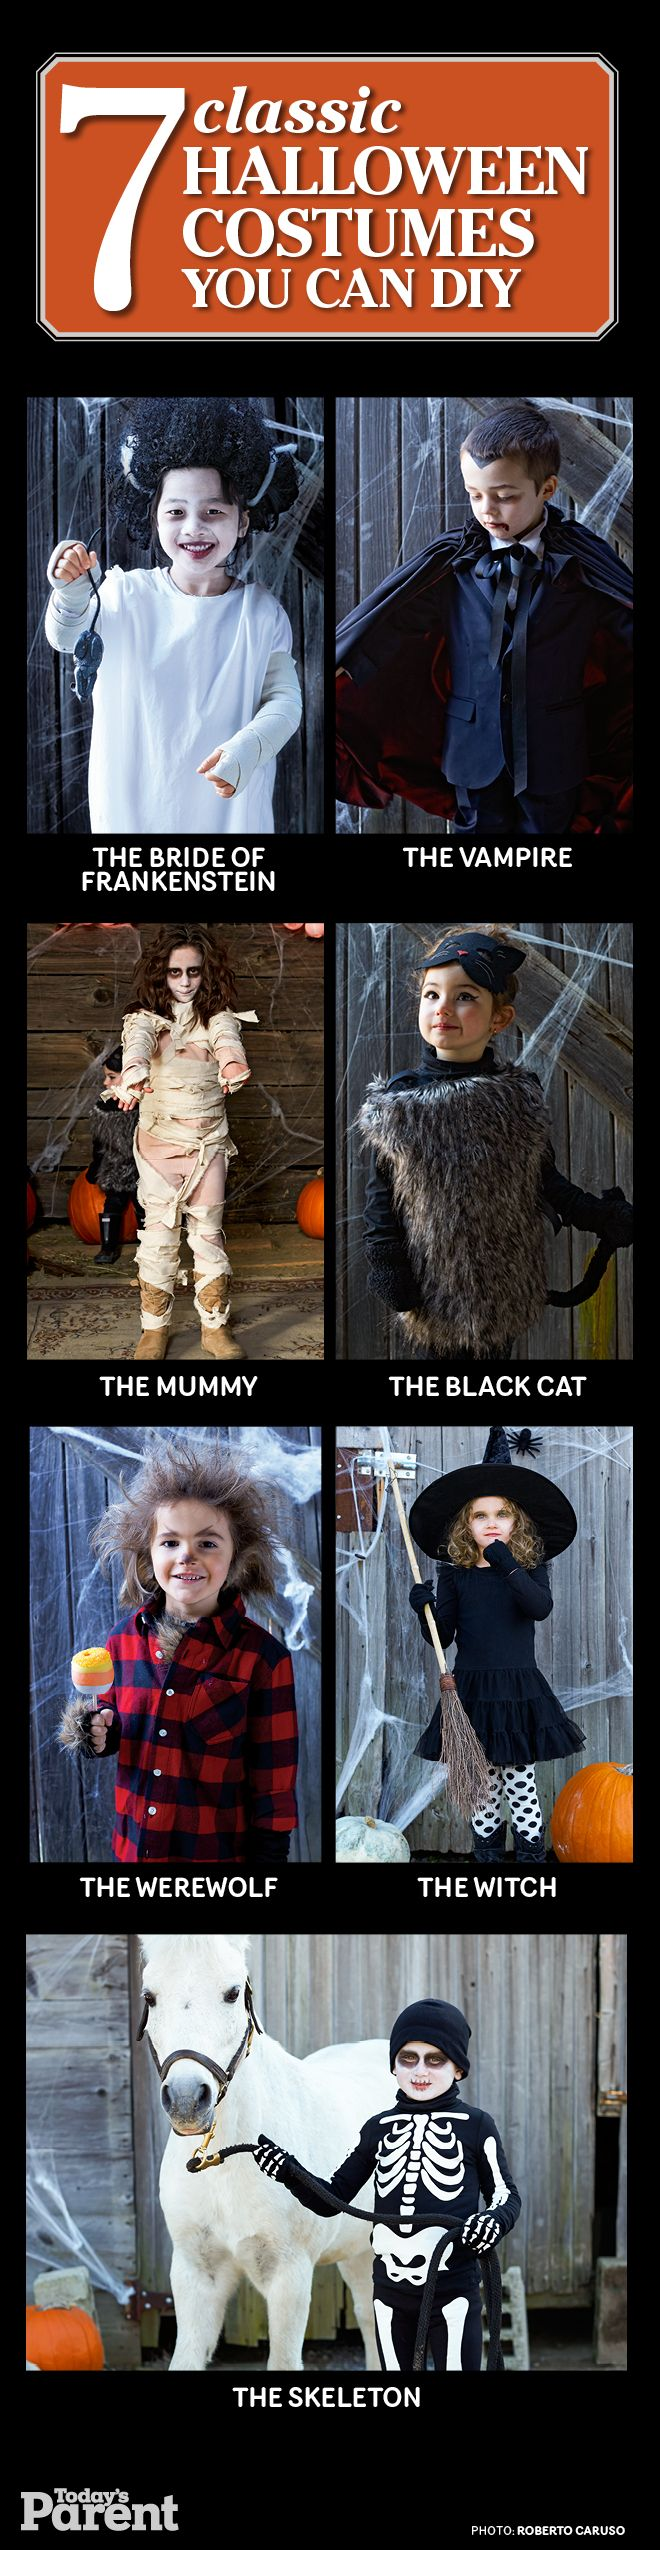 Get instructions on how to DIY these 7 classic Halloween kid costumes!